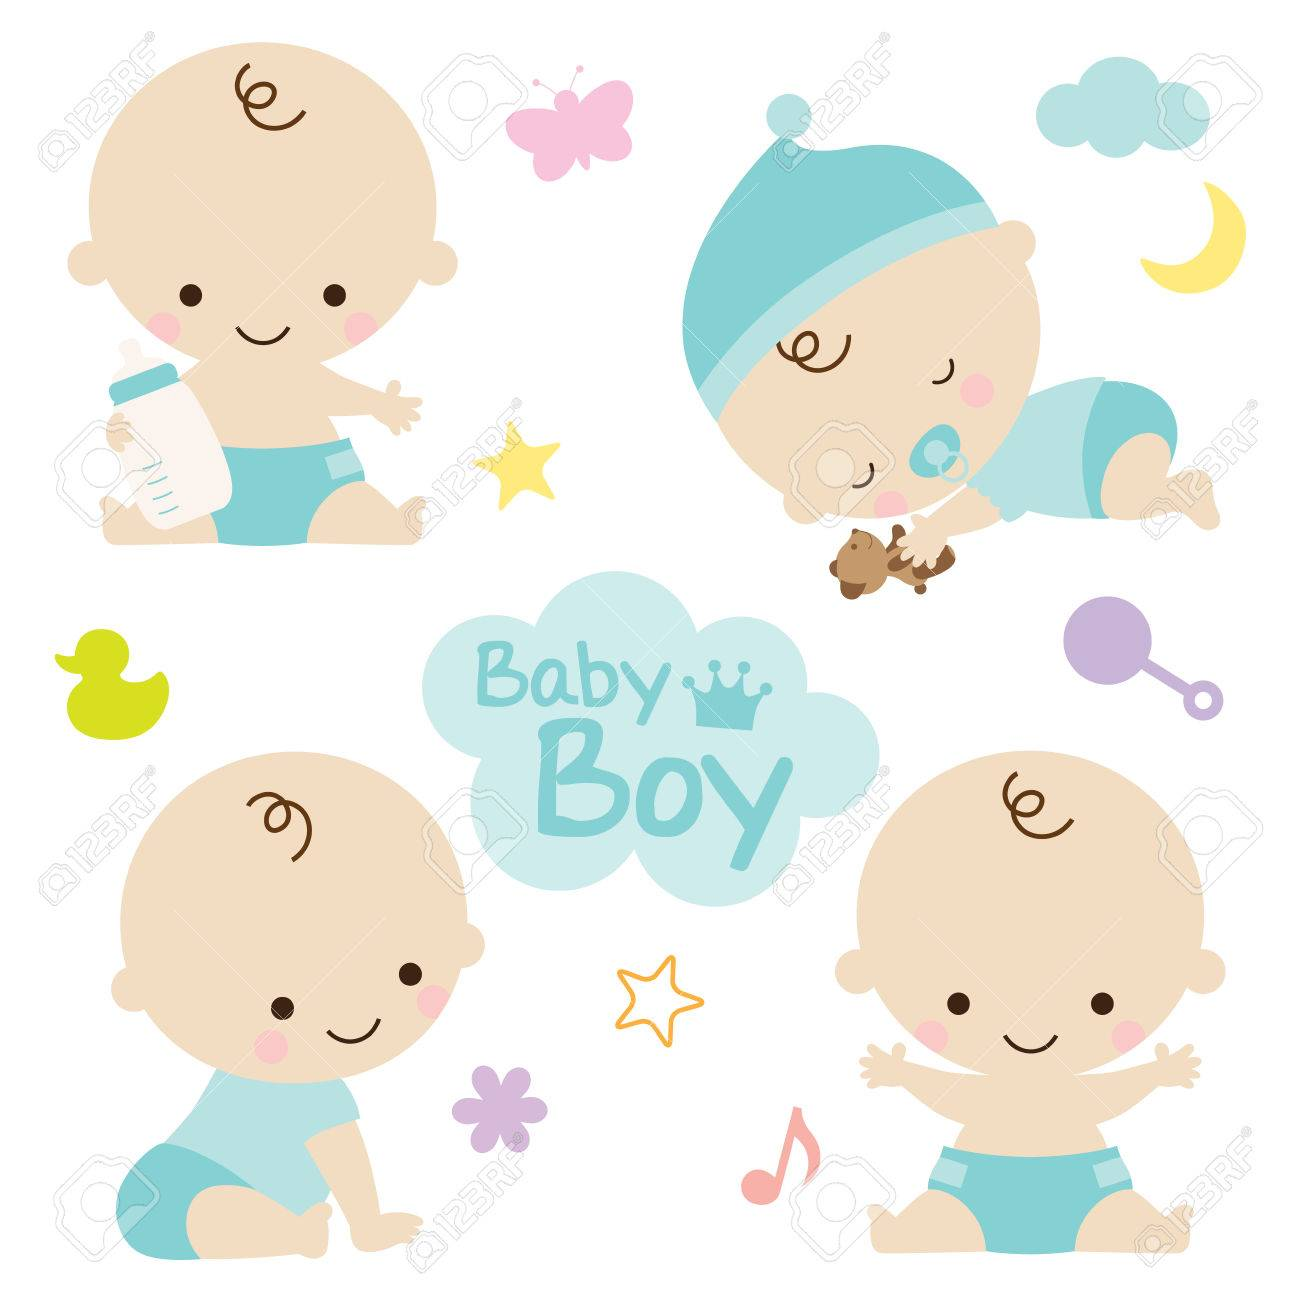 Vector illustration of baby boy with cute graphic elements. Perfect for baby shower. - 74266338